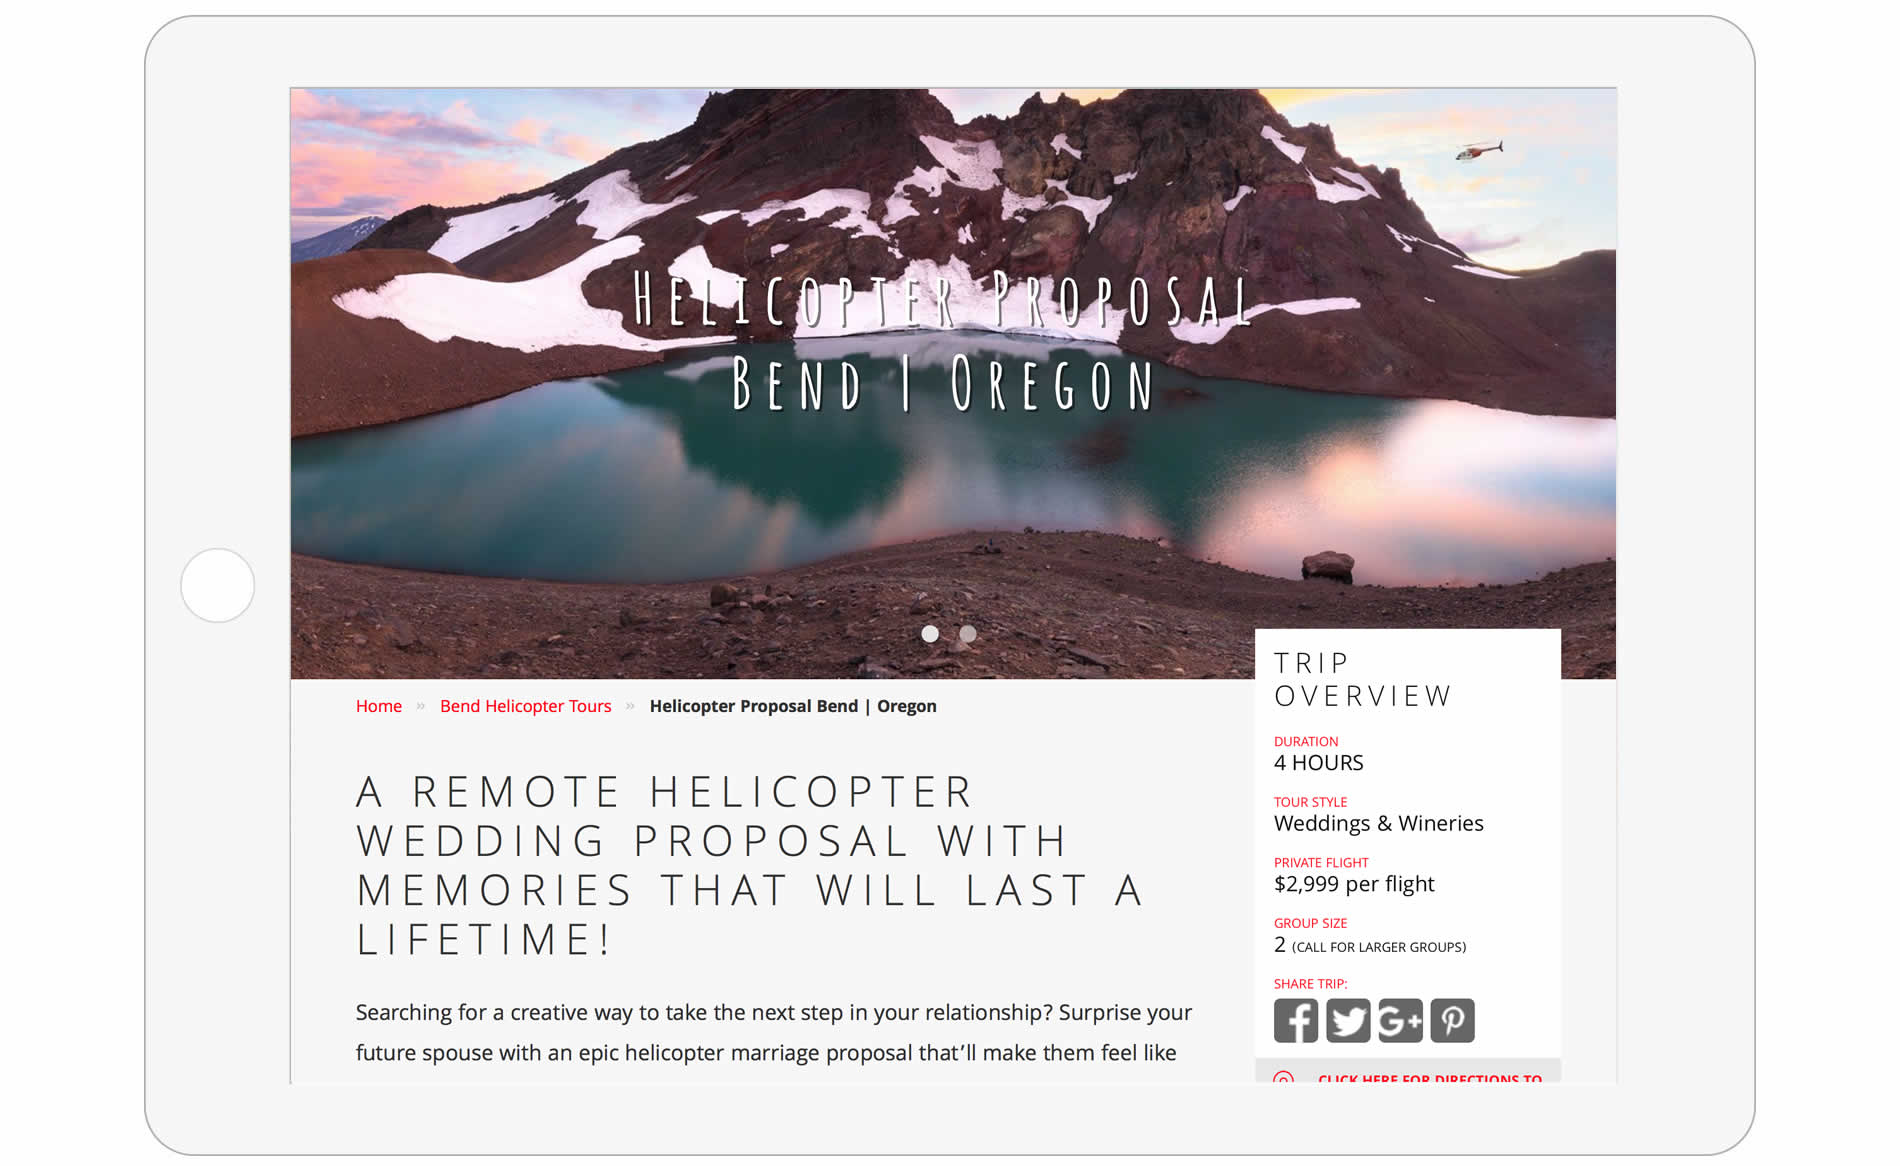 Big Mountain Heli Tours Website Design - Trip